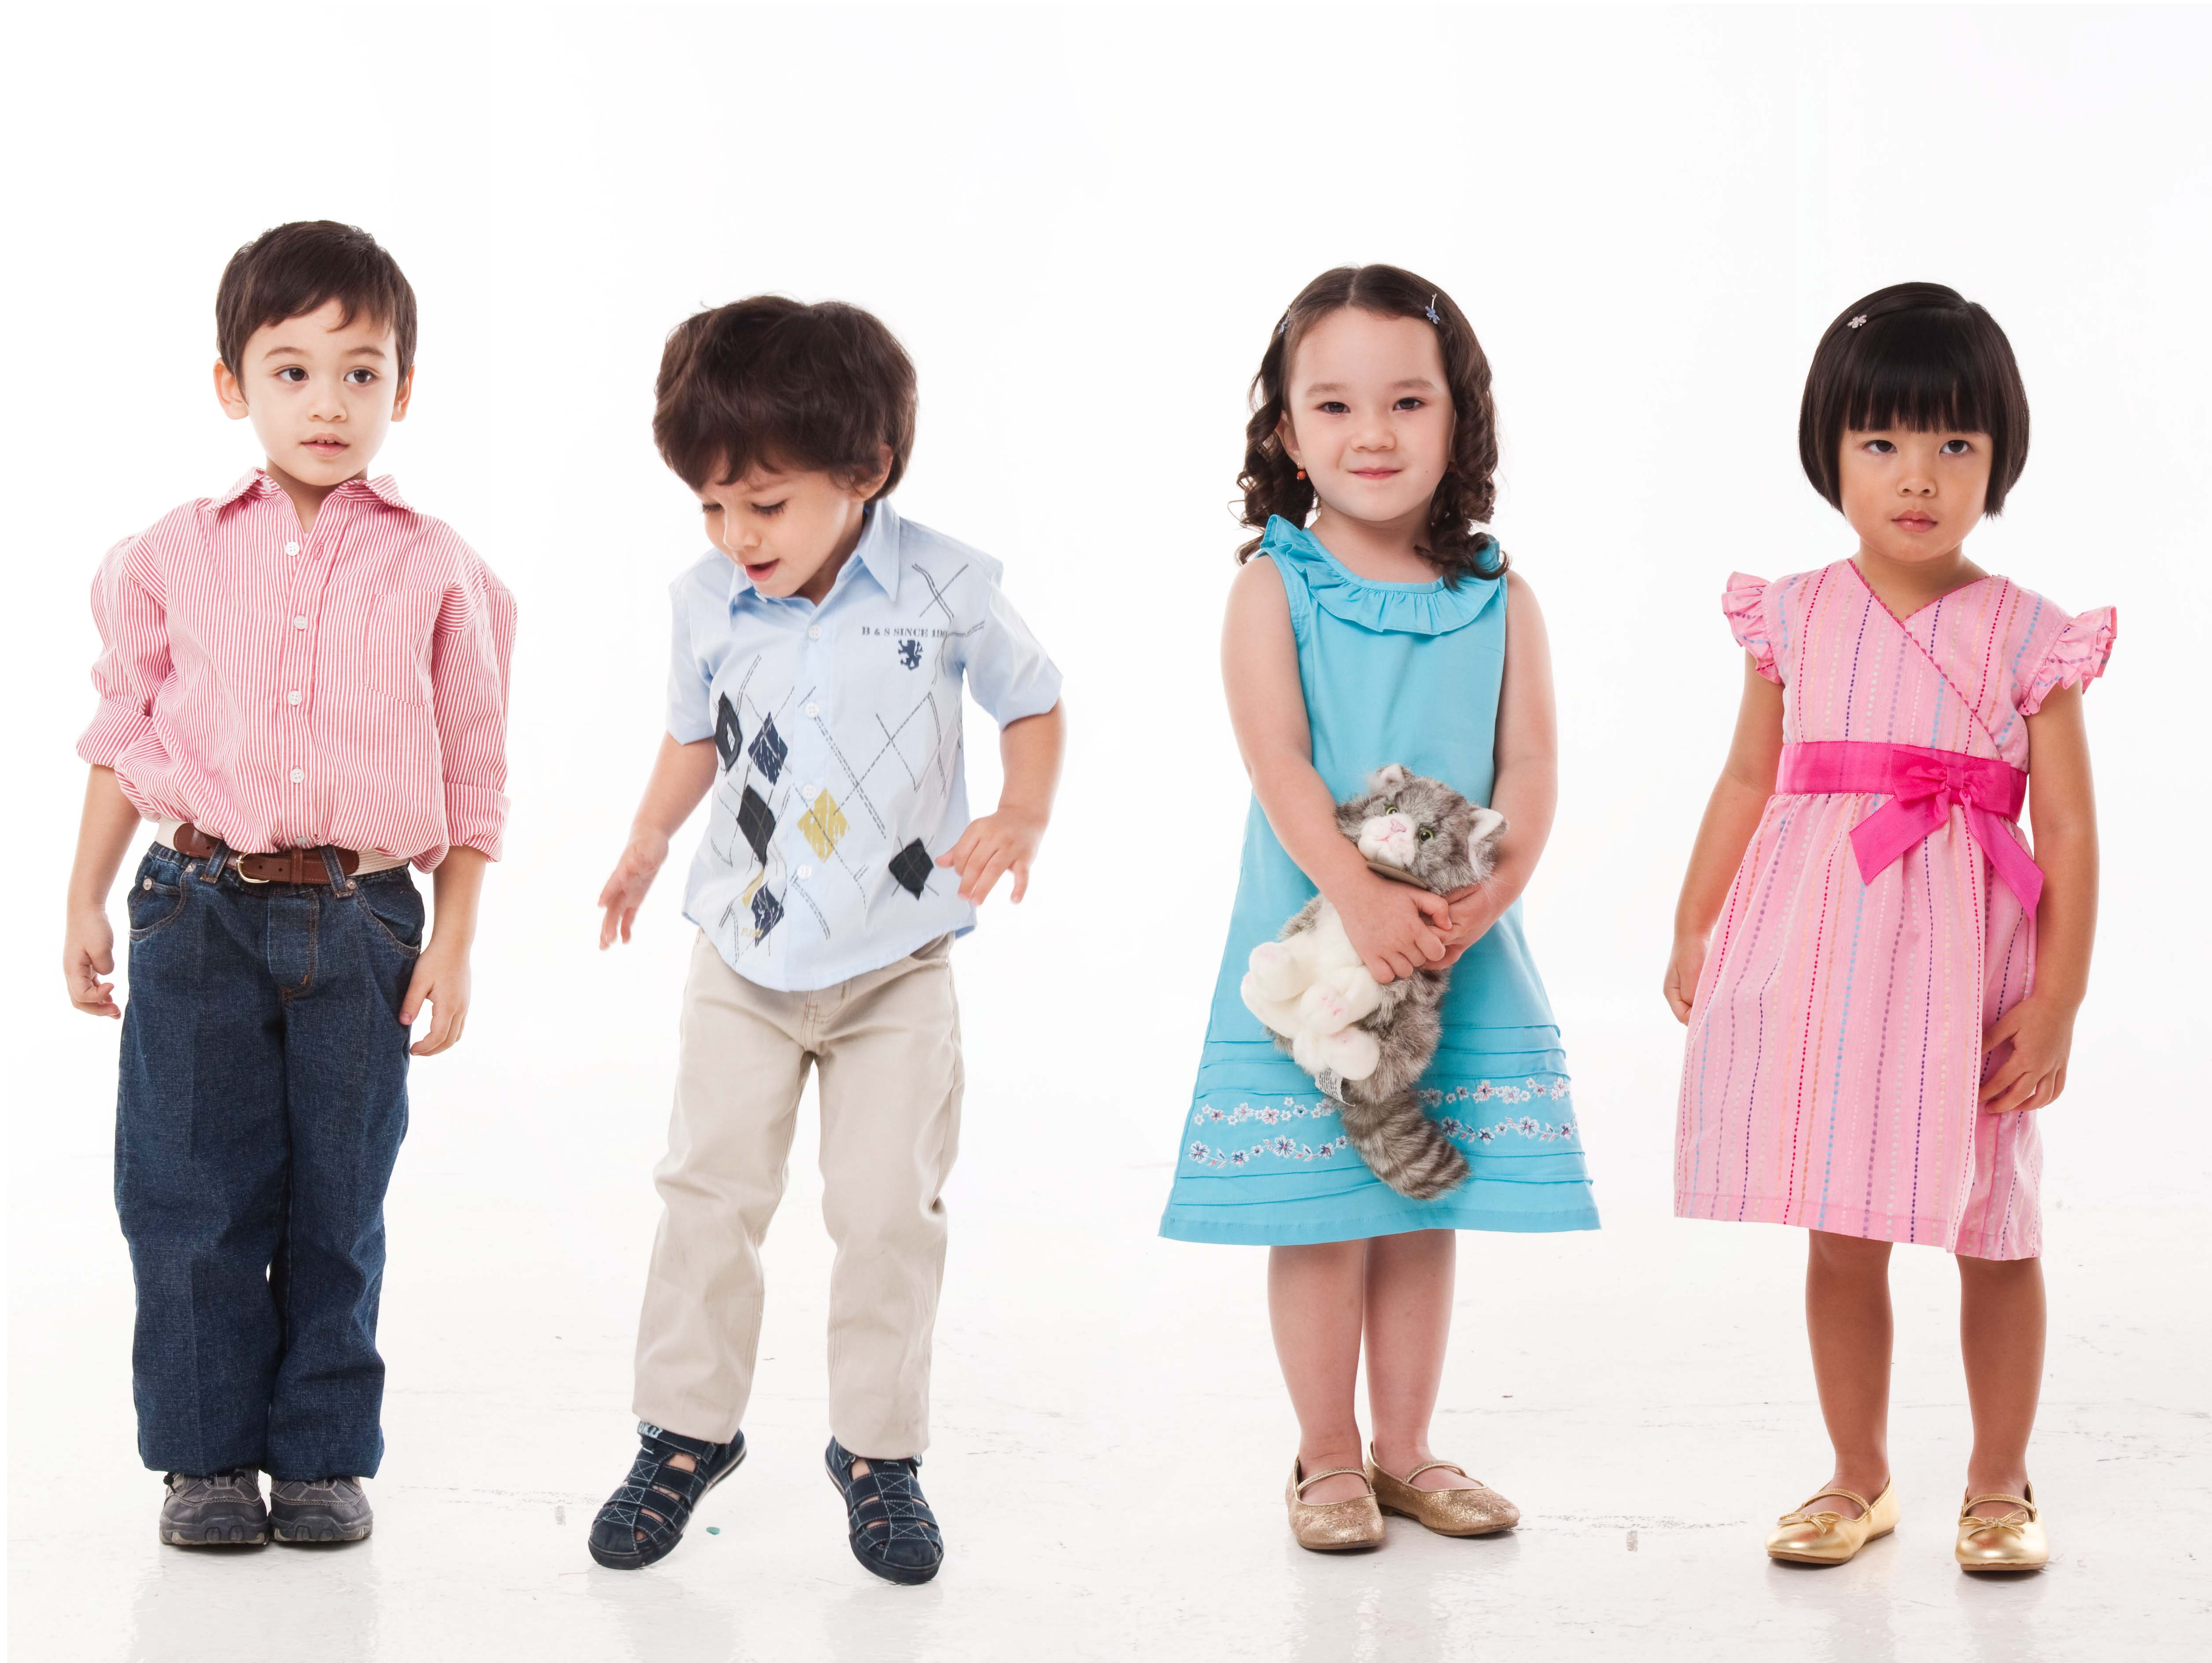 Whether you're looking to shop for infants, toddlers, boys or girls, we've got the best selection of new arrivals in kids clothing at Century 21! Shop now.